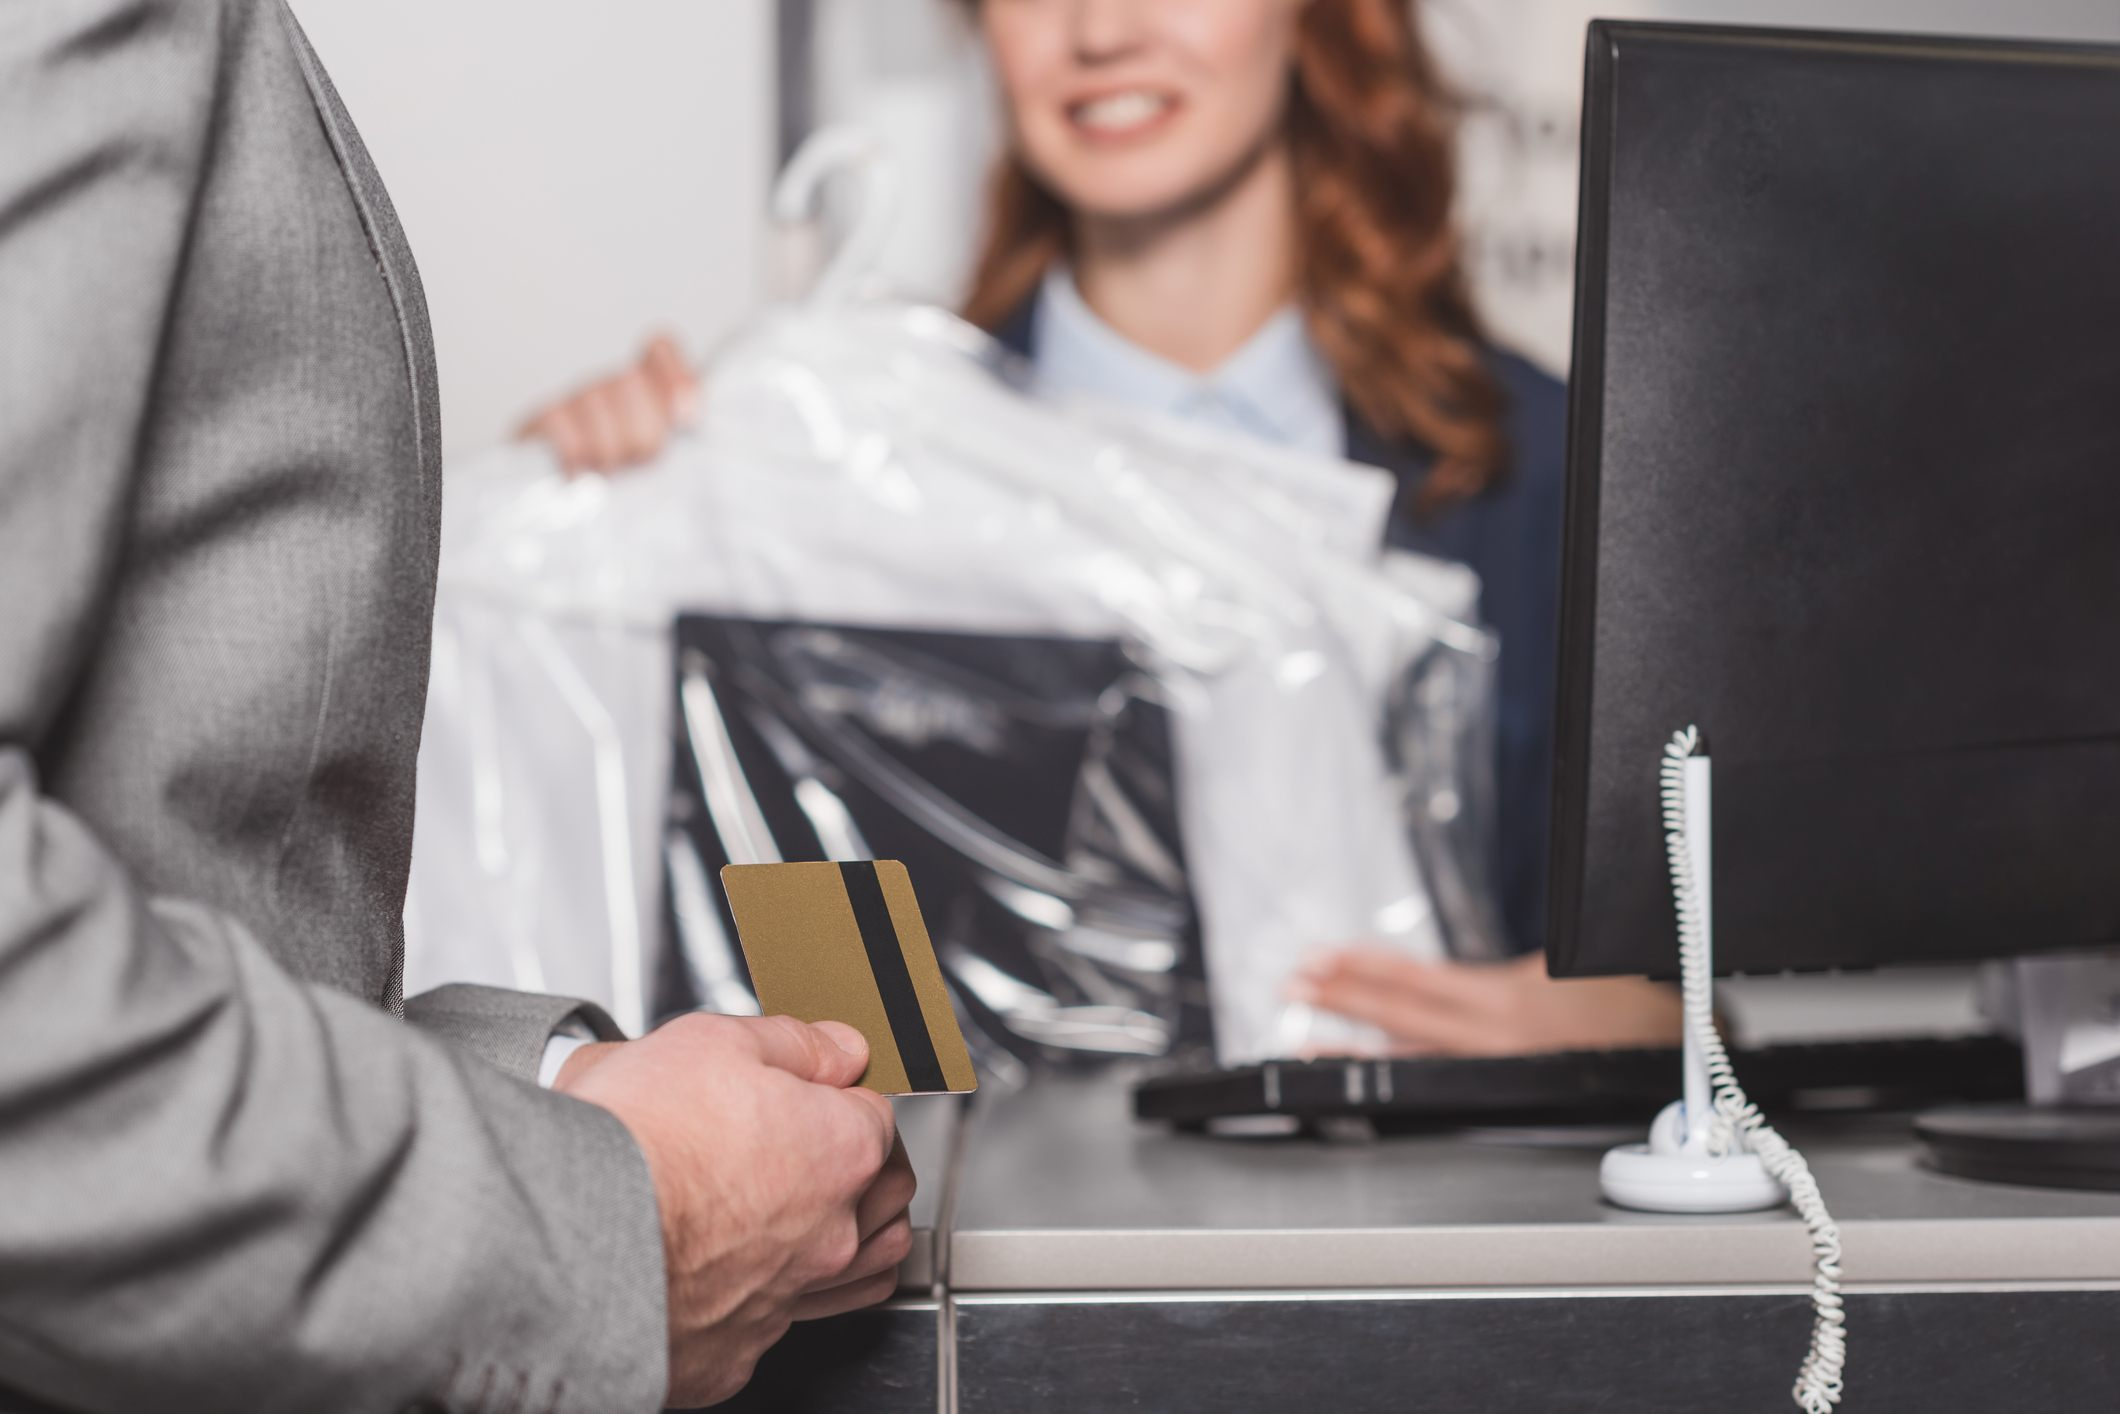 cropped shot of man holding credit card at dry cleaning office